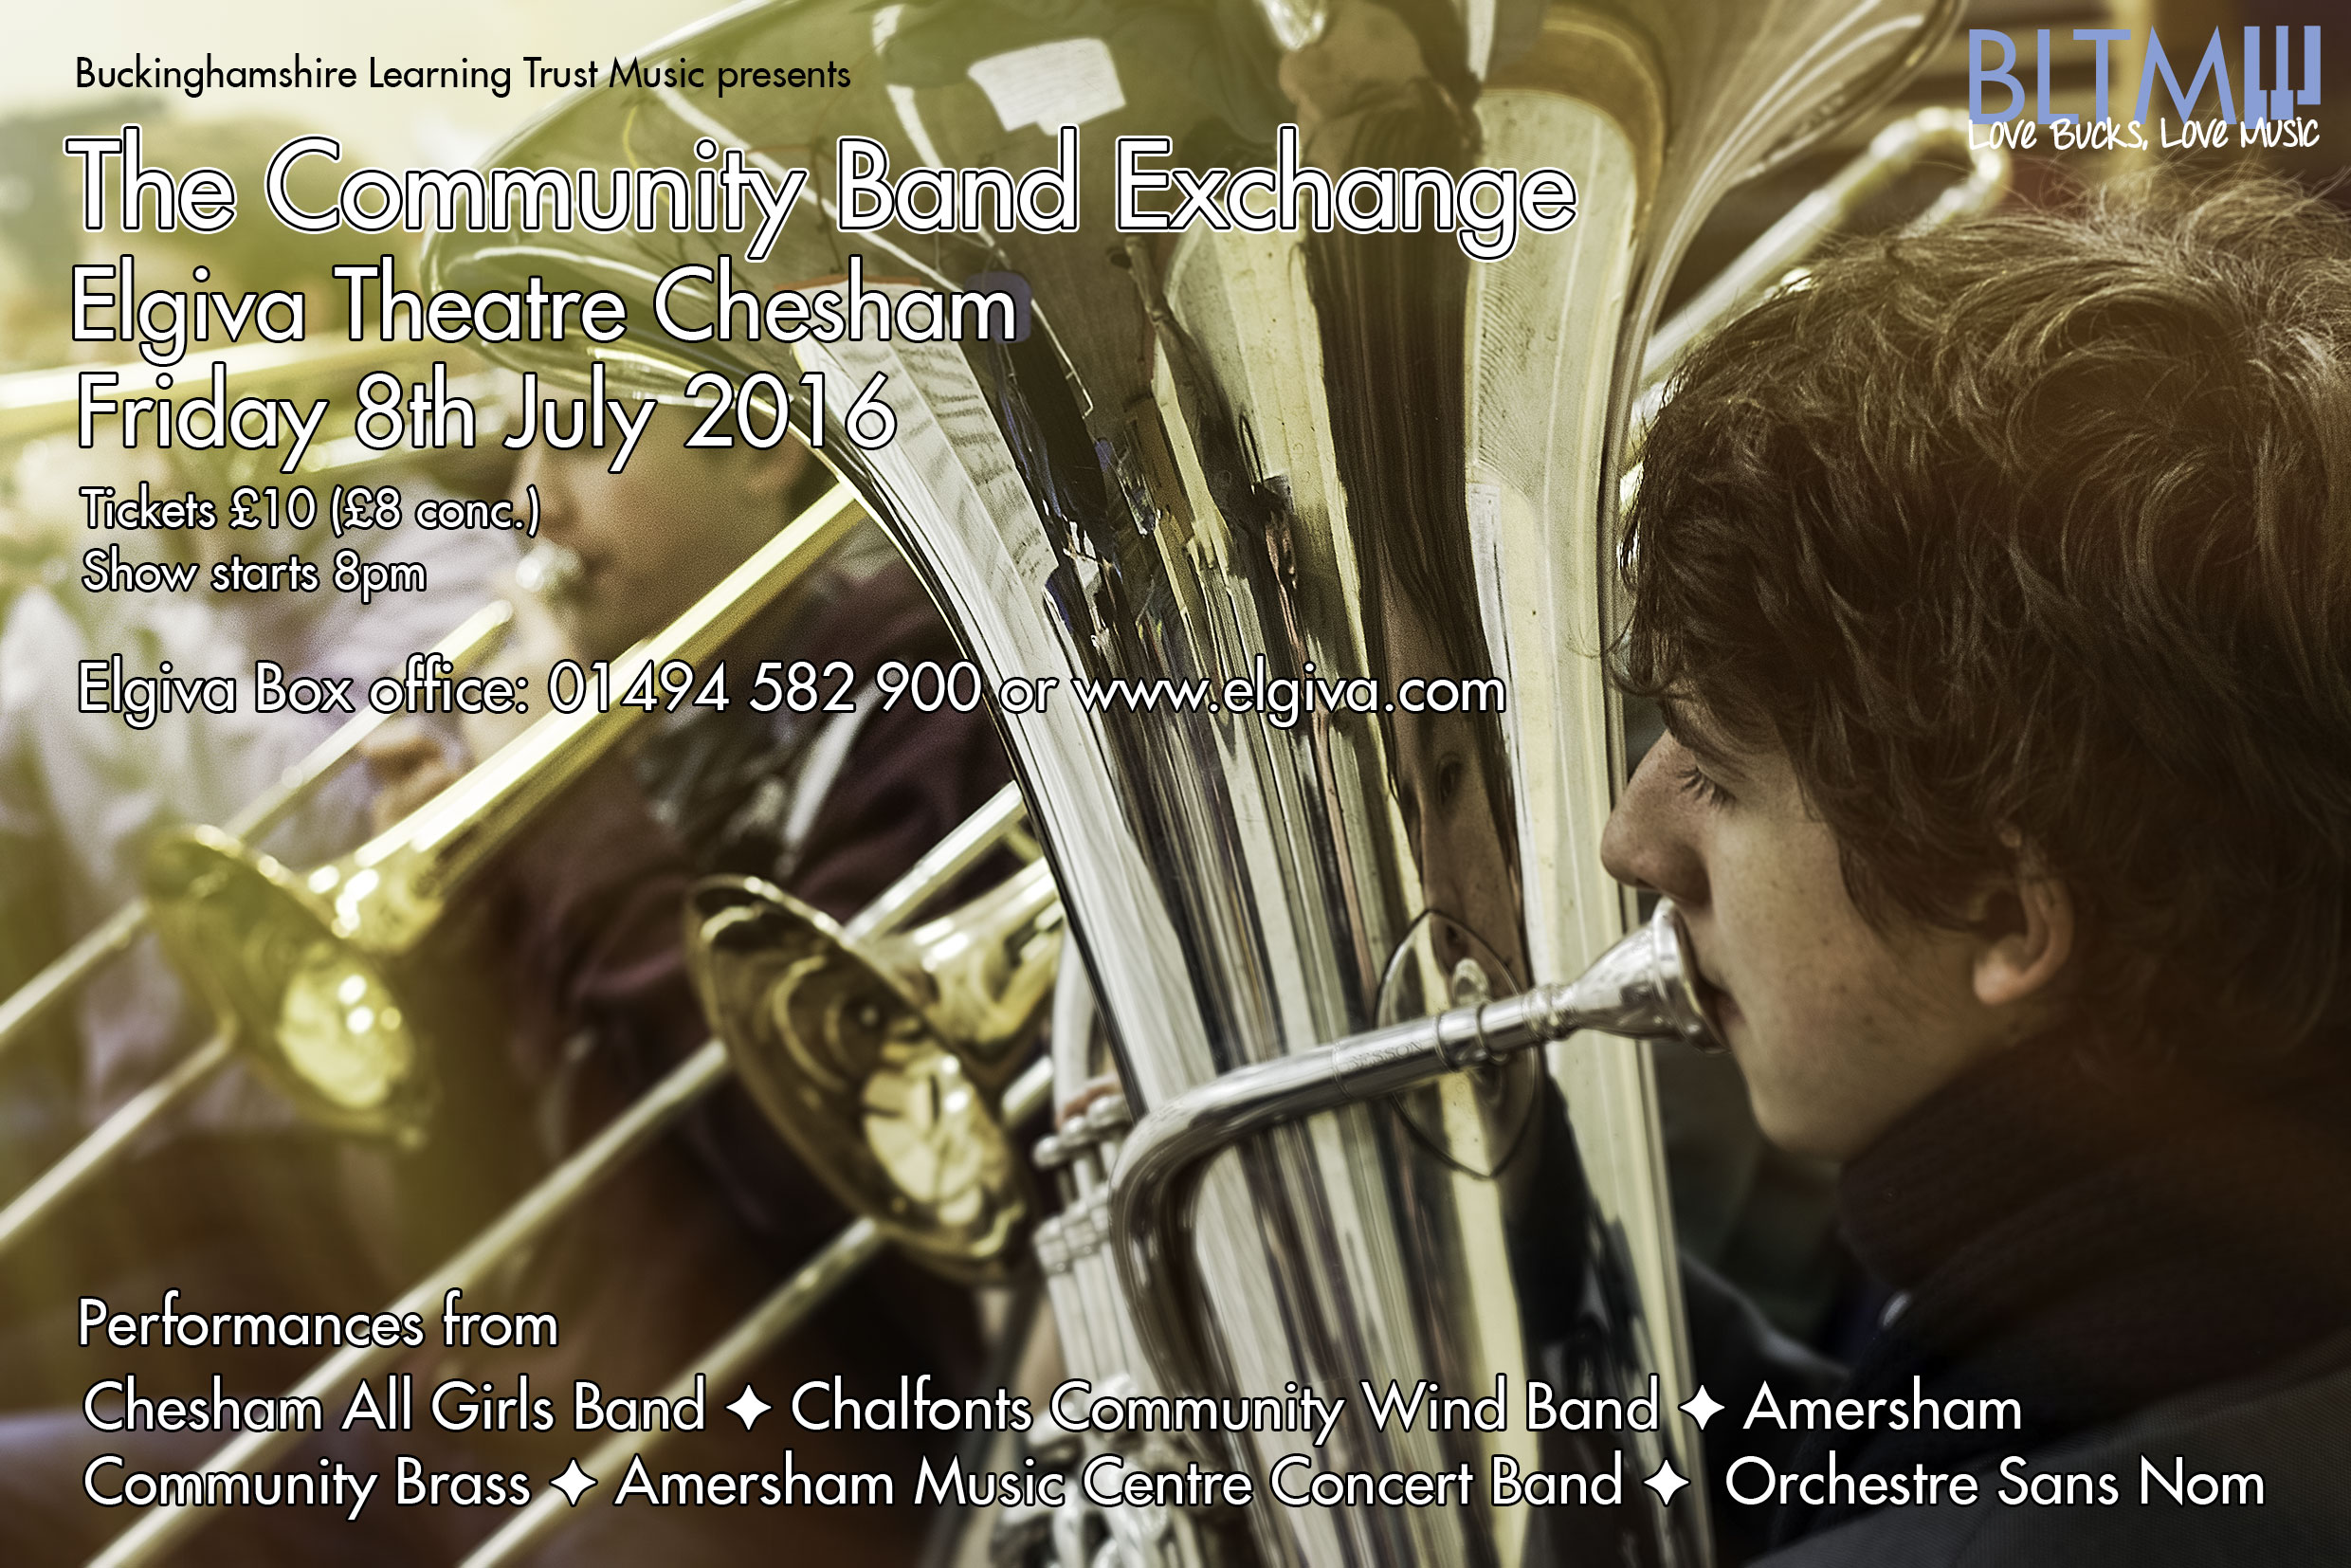 Community Band Exchange